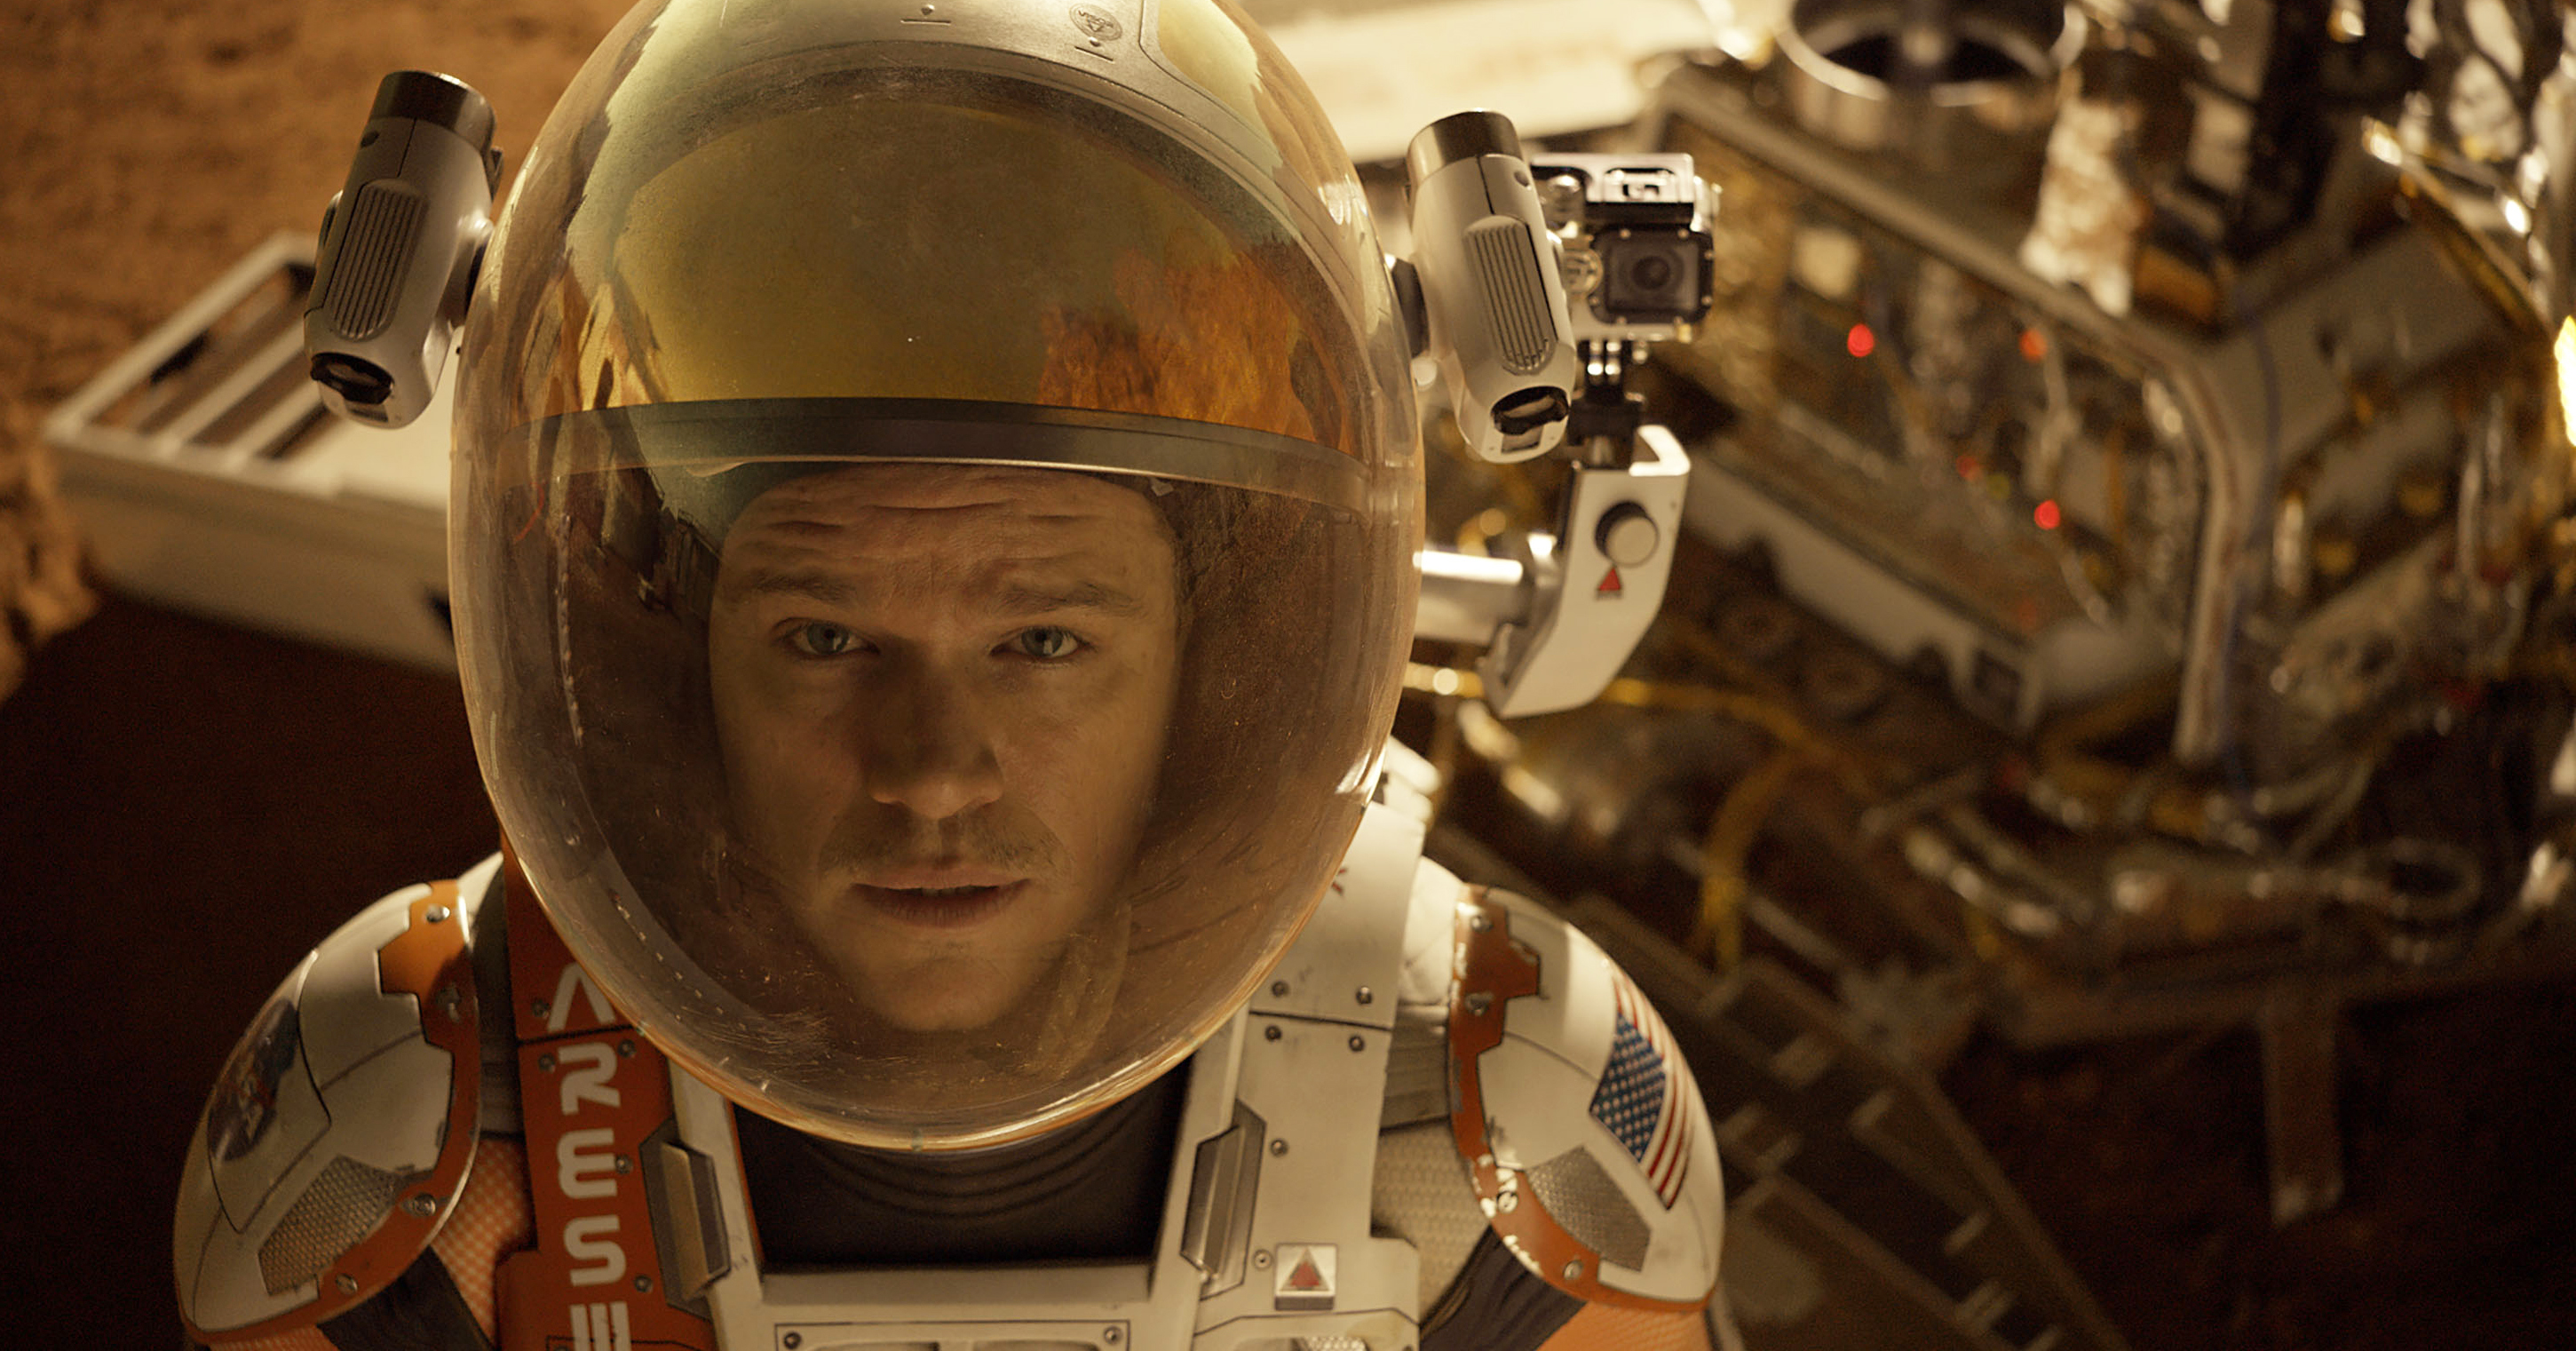 Saving Astronaut Damon: Ridley Scott's 'The Martian' is rousing space adventure